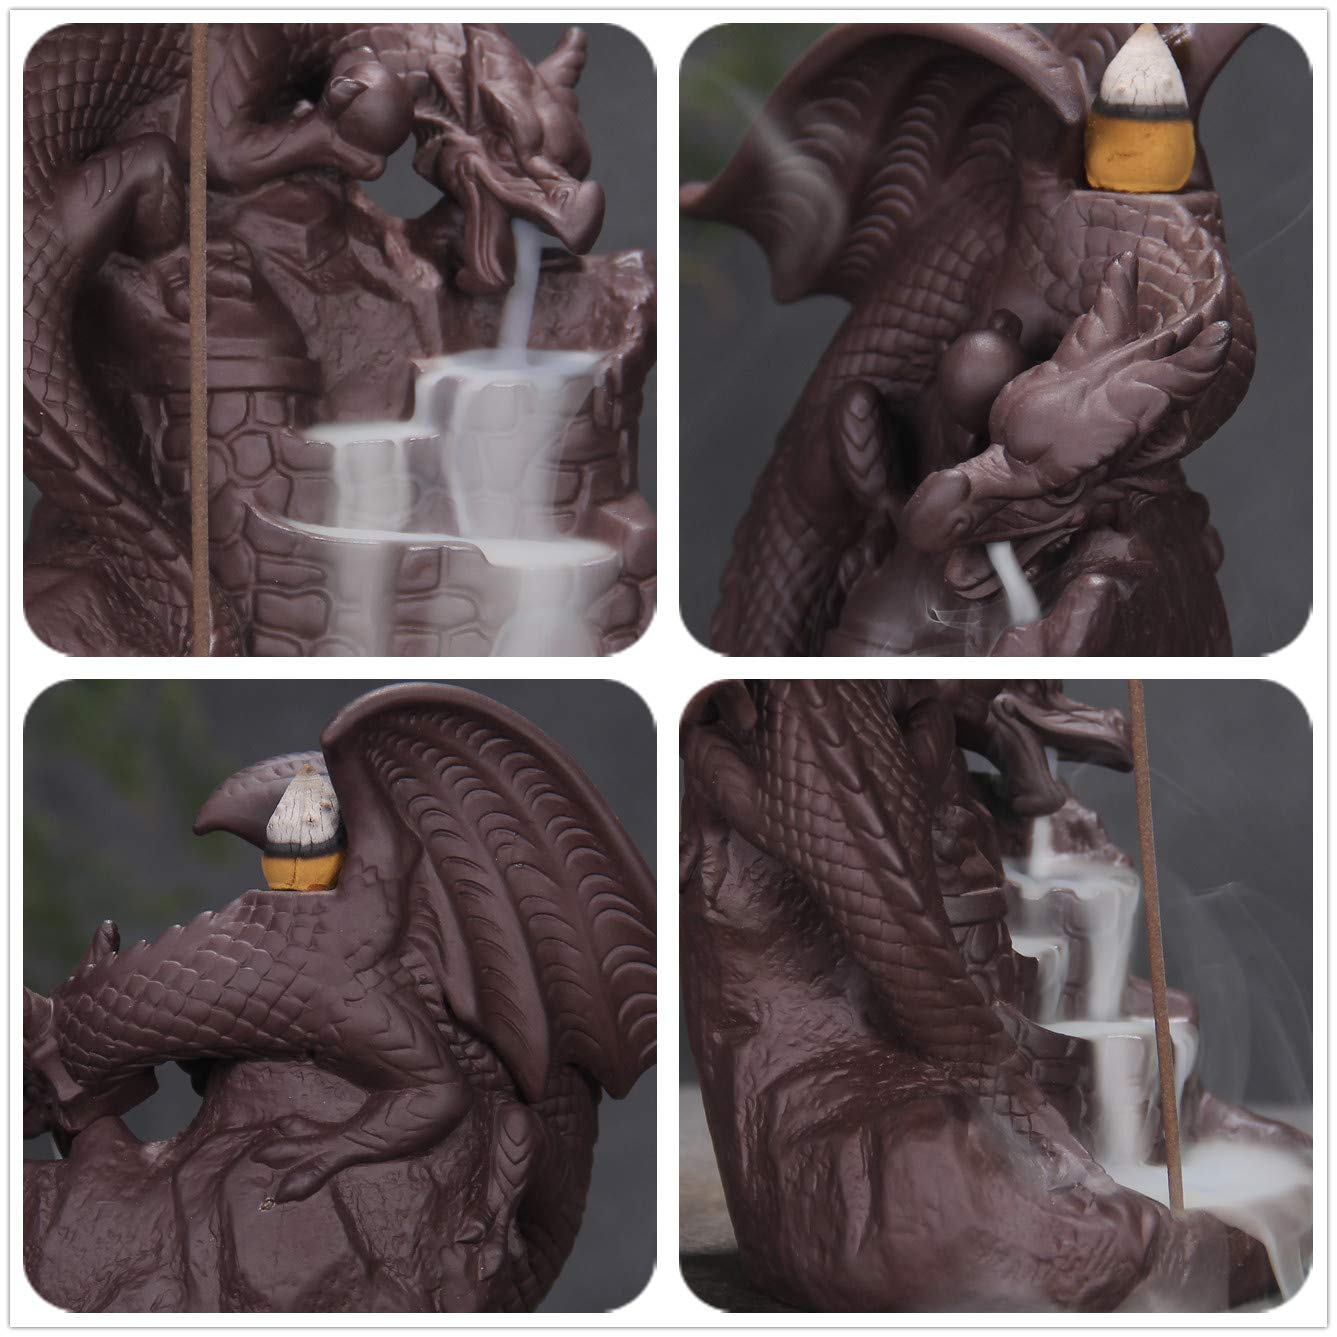 Waterfall Incense Holders Home Decor Gift Decorations Statue Ornaments OWMMIZ Fly Dragon Backflow Incense Burner with 10 PCS Backflow Incense Cones